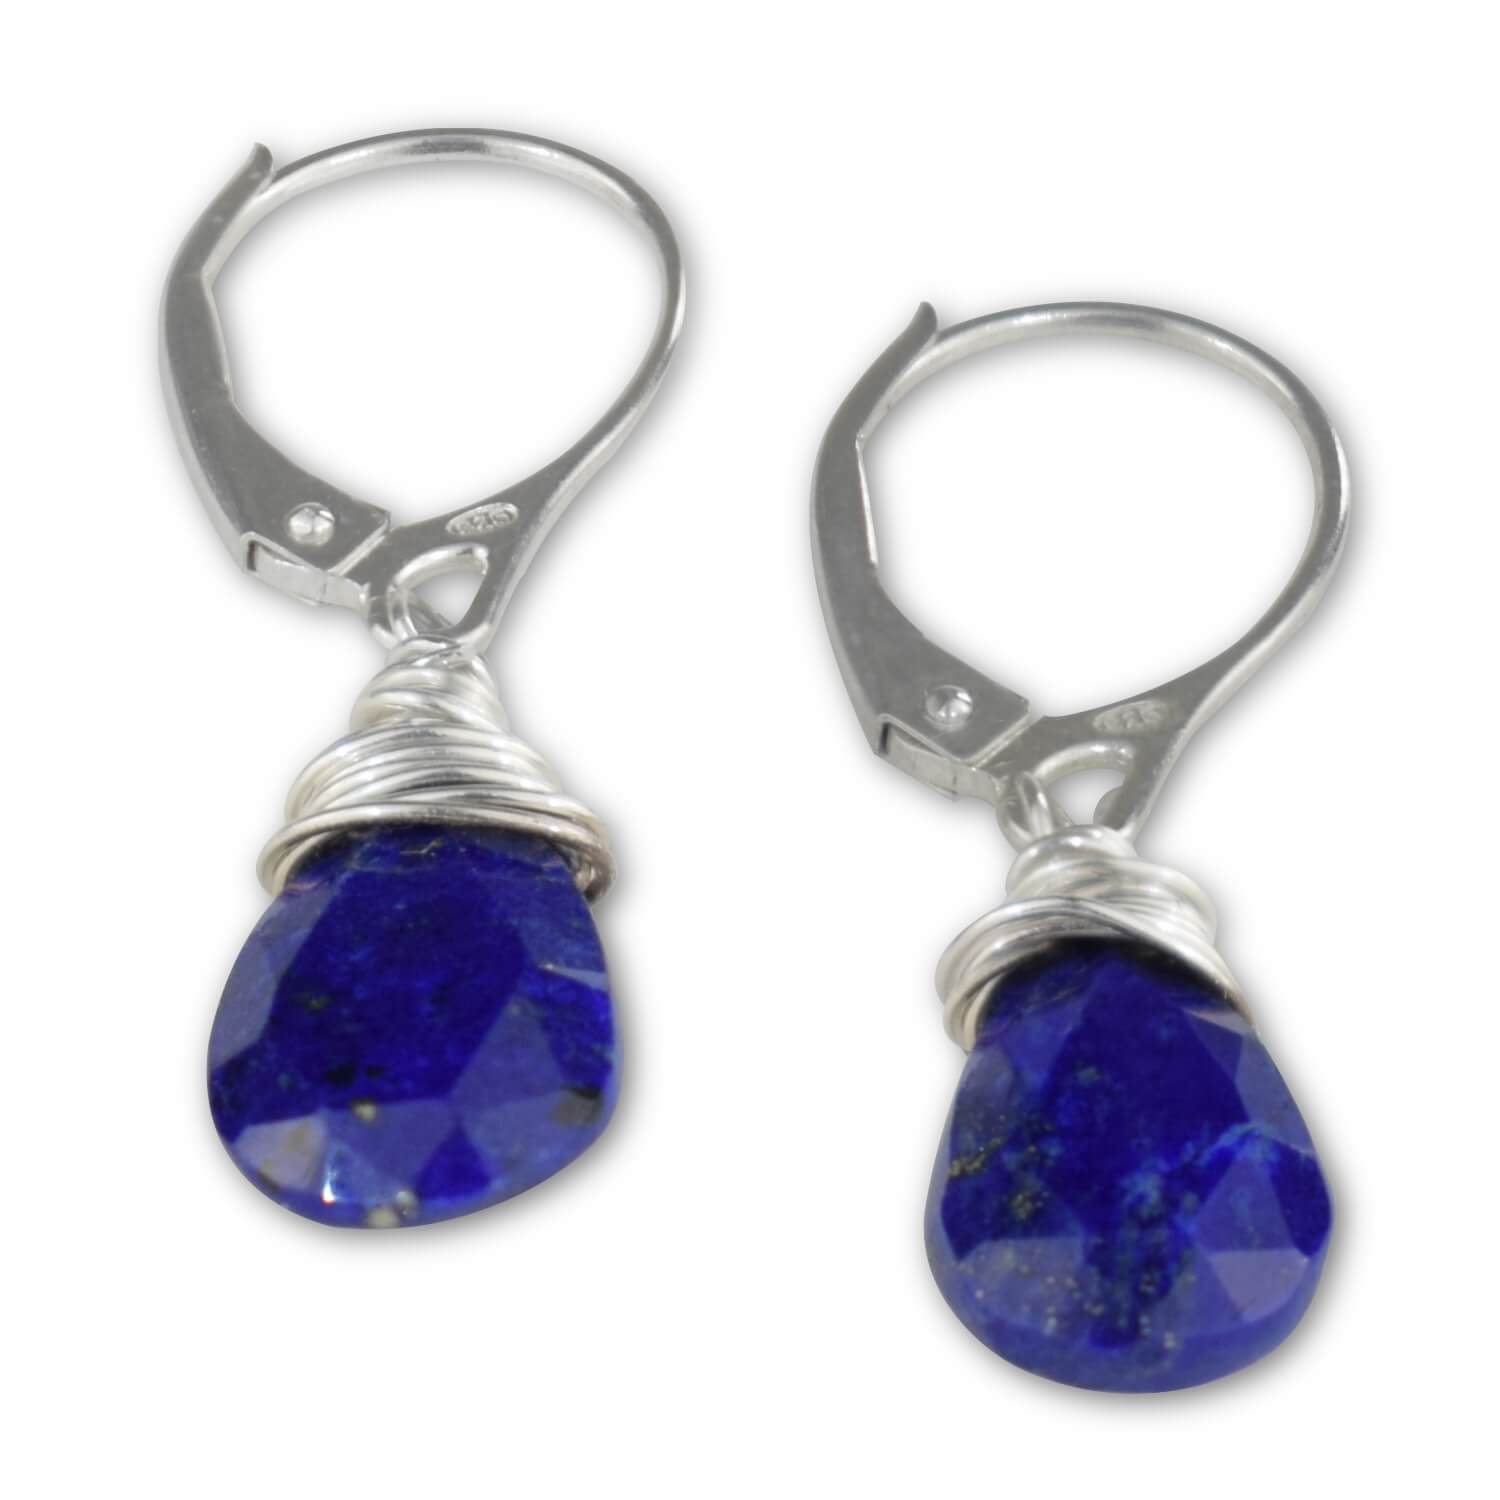 Lapis Lazuli Leverback Earrings - aymcollections